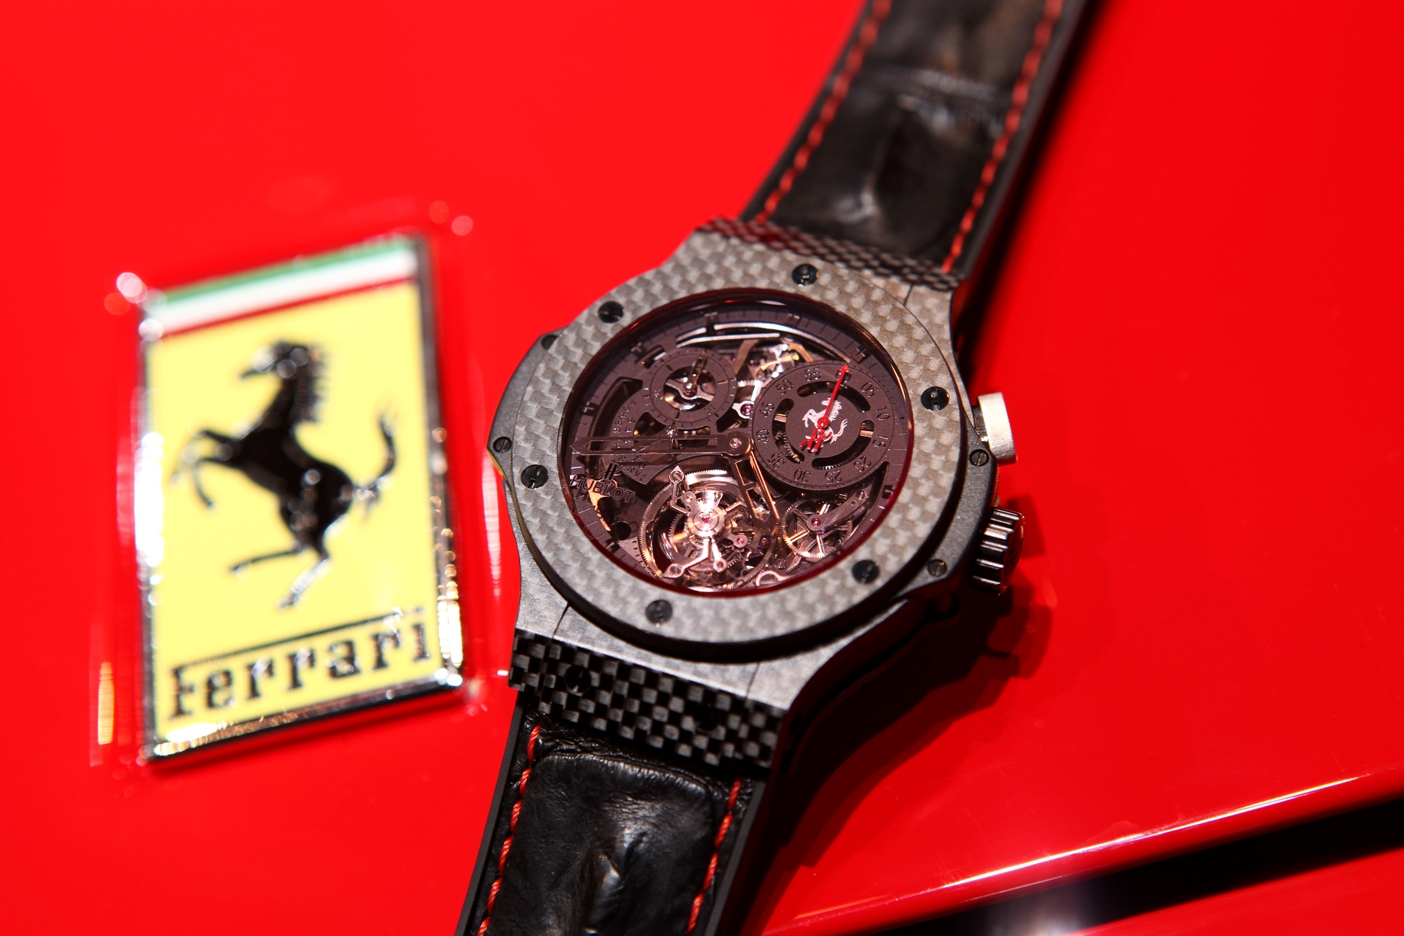 newest collection the com turbo watches mastersintime en us buy at ferrari